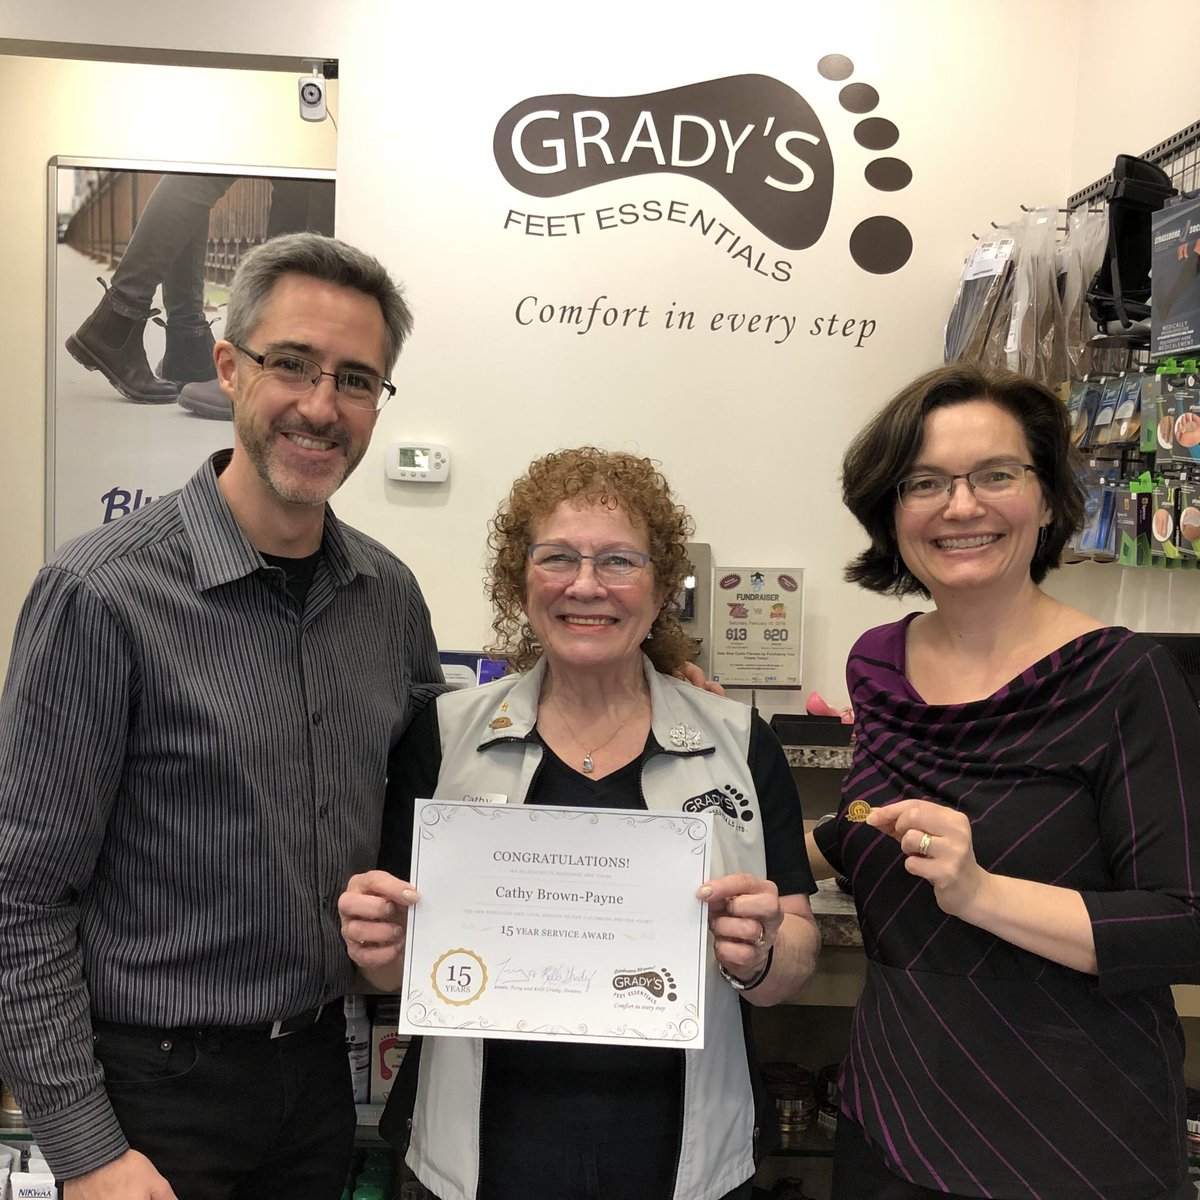 test Twitter Media - Congratulations to our longest serving staff member, Cathy Brown-Payne, who received her *15 Year* Service Pin yesterday! 🎉 #ThankYouForBeingAwesome @LansdownePlace #PTBO https://t.co/oqH3aoWDLe